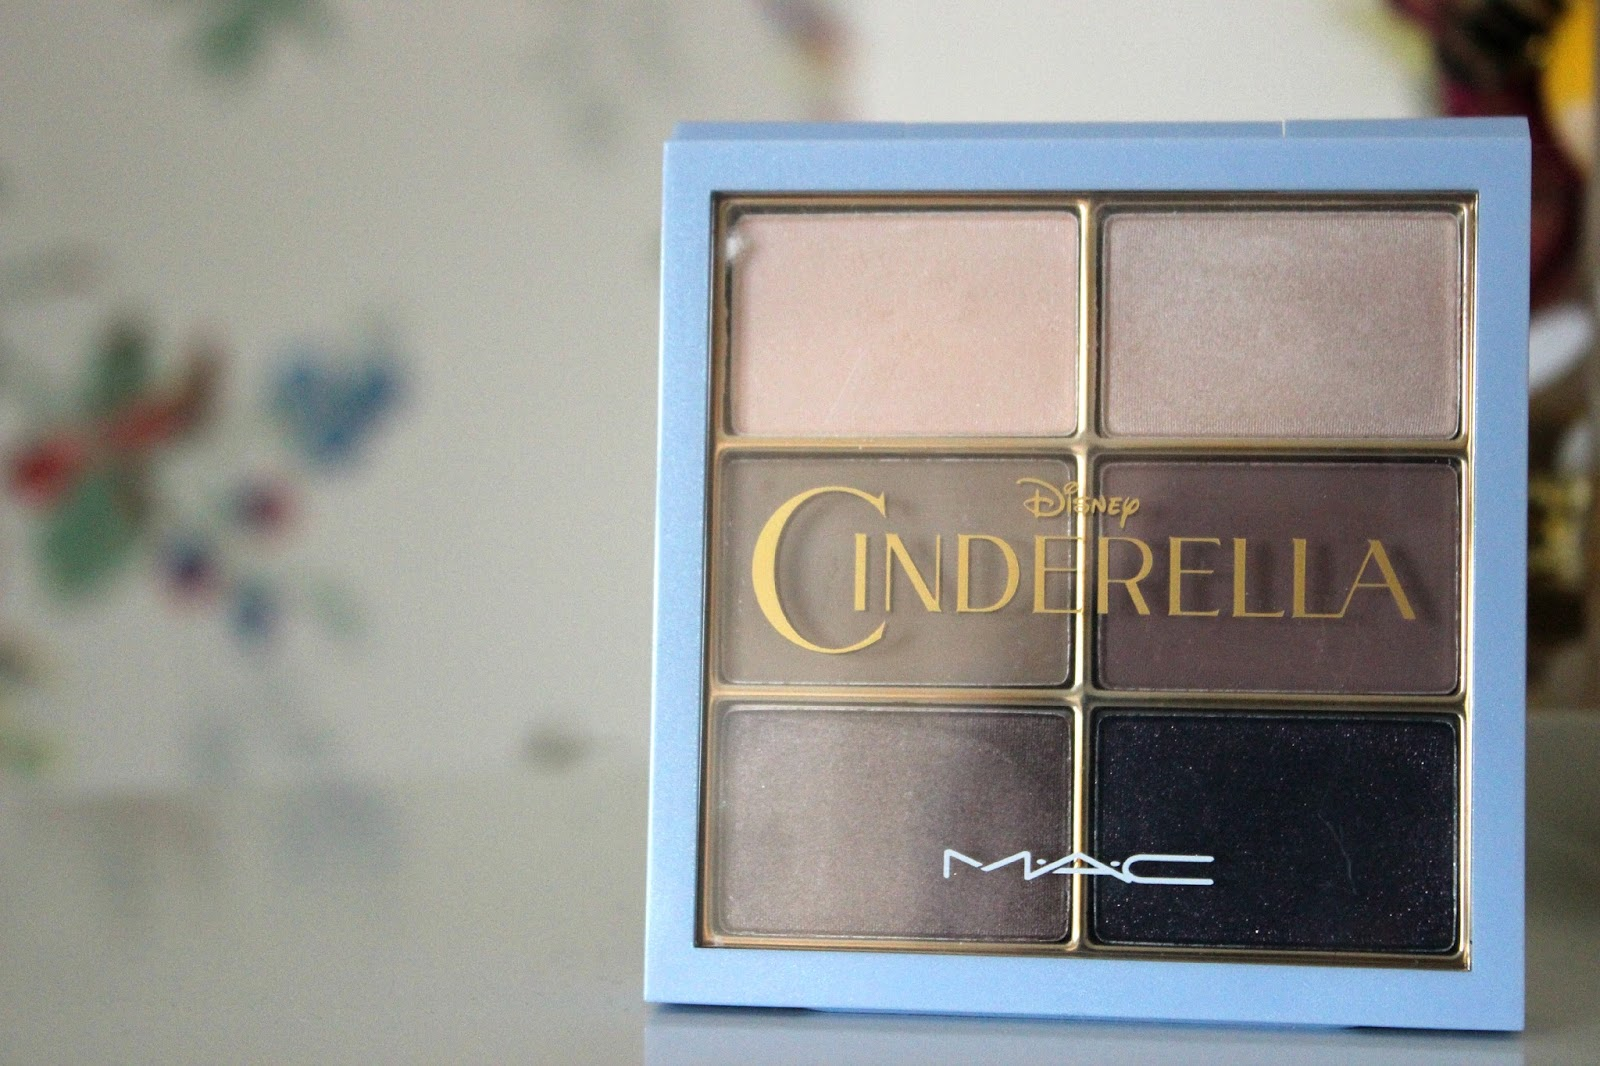 Review of the MAC Cinderella 'Stroke Of Midnight' Palette